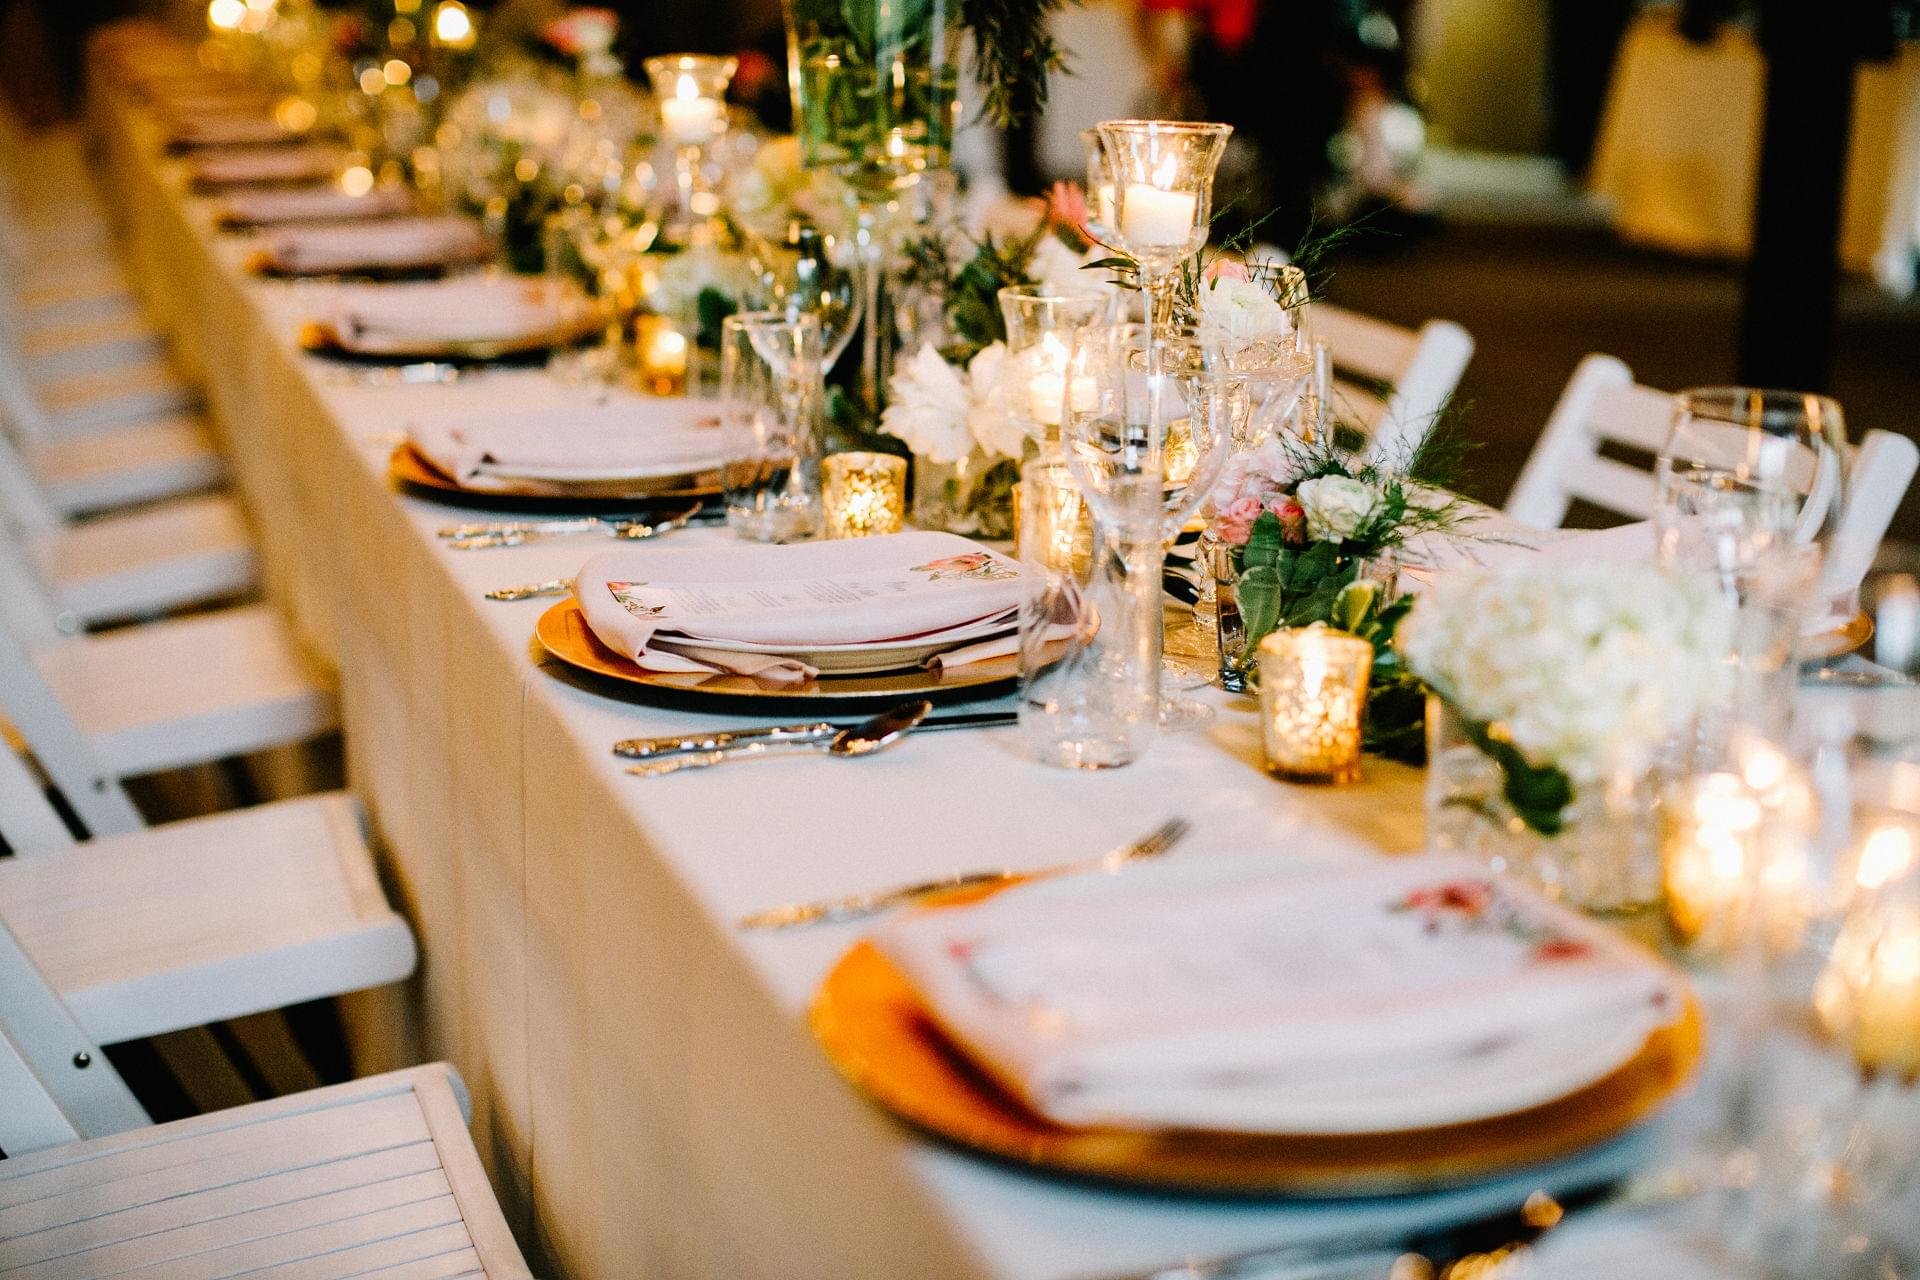 Sparkles event decor design wedding planners charleston weddings sparkles event decor design junglespirit Image collections